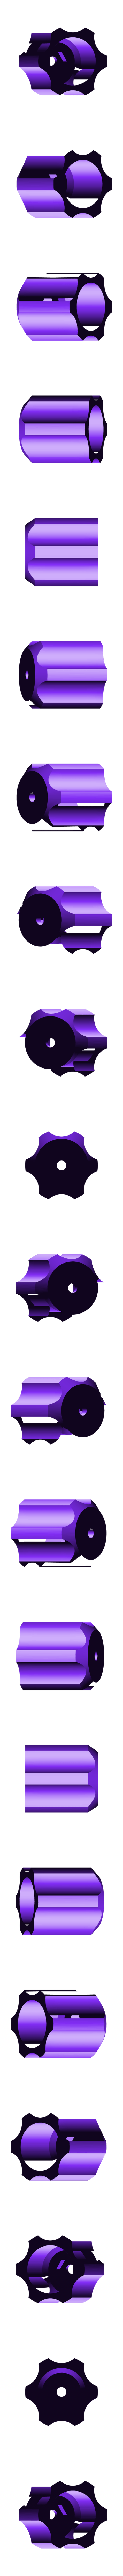 Geared_Extrude_updated_for_spring_knob.stl Download free STL file FDM Printer de Kleine Reus 300x300x900 • 3D printable object, Job